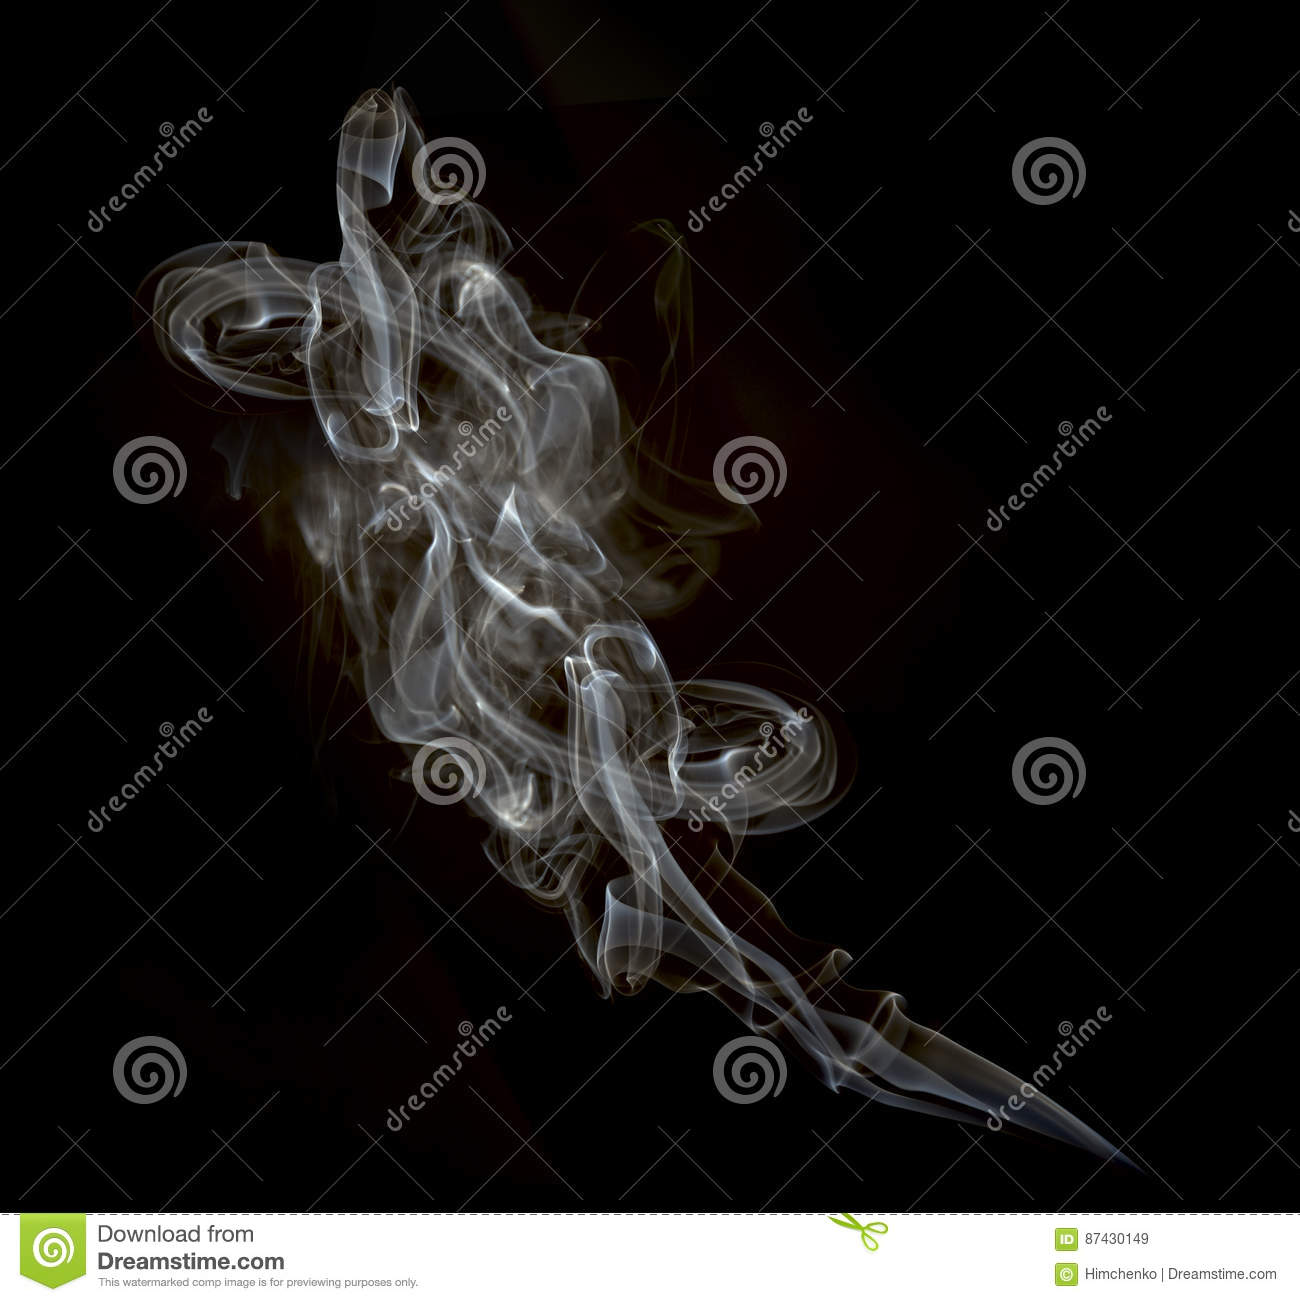 A cloud of cigarette smoke on a black background